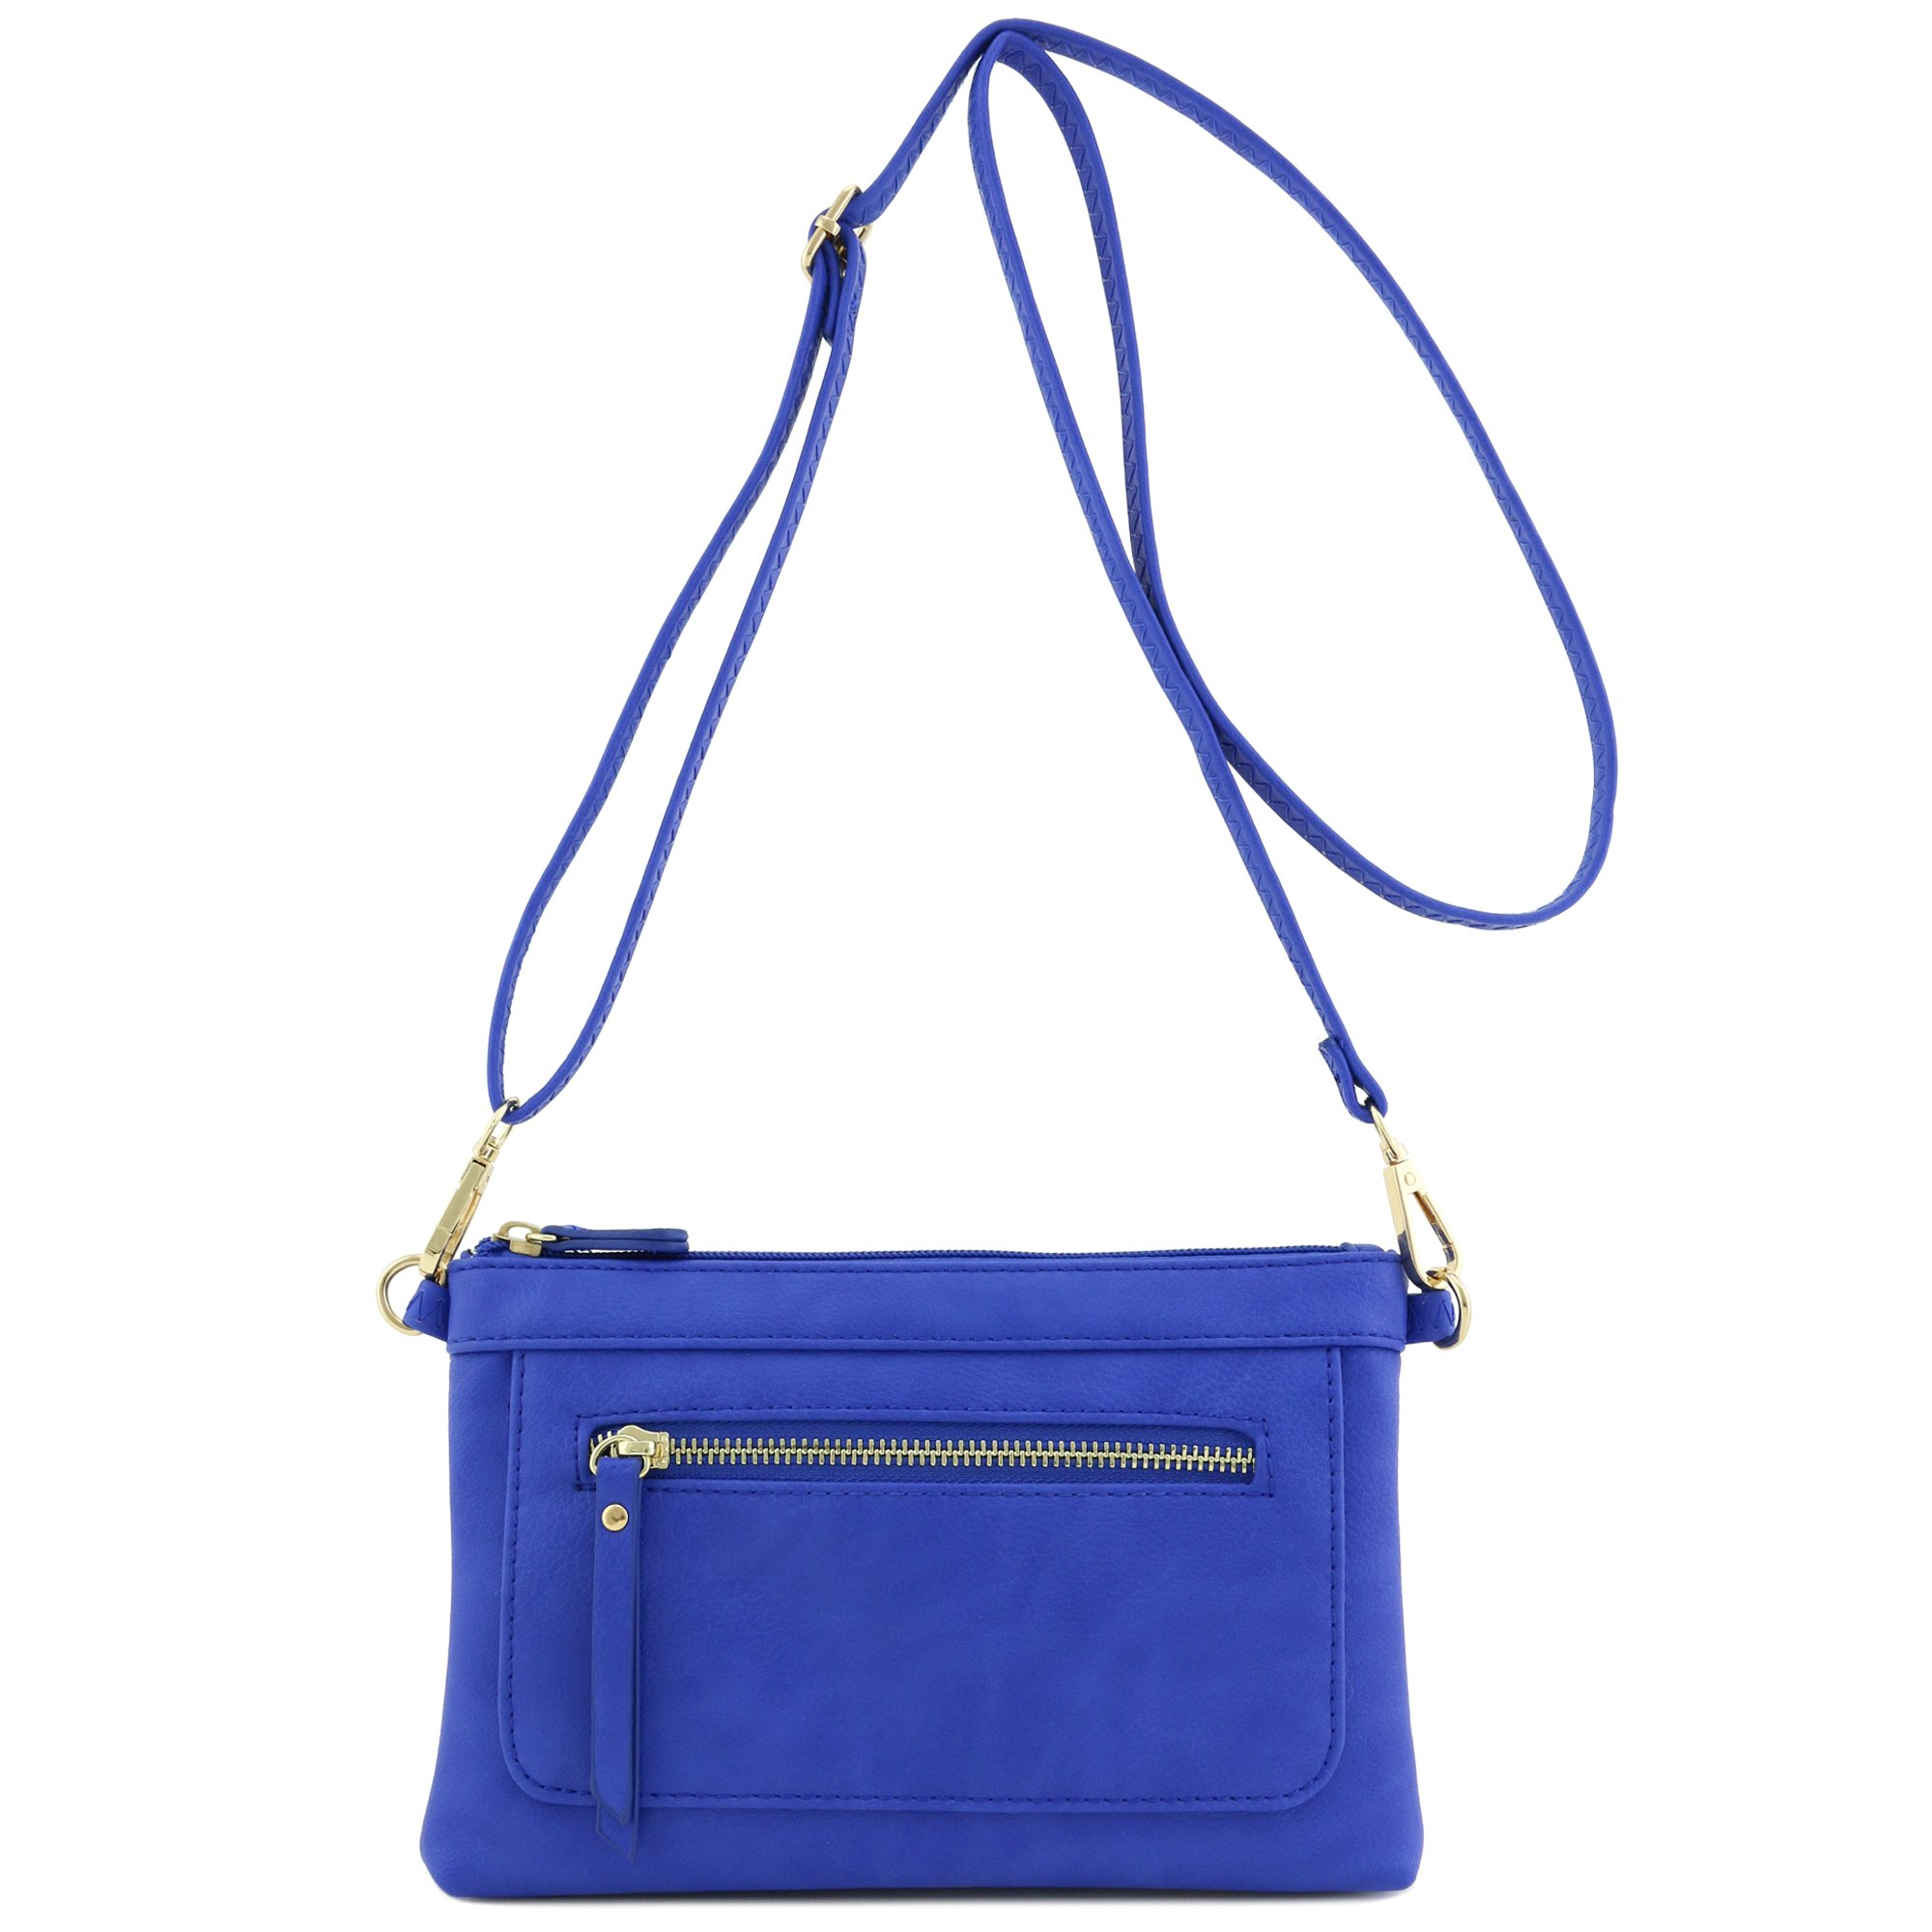 Multi-functional Wristlet Clutch and Crossbody Bag (Royal Blue)